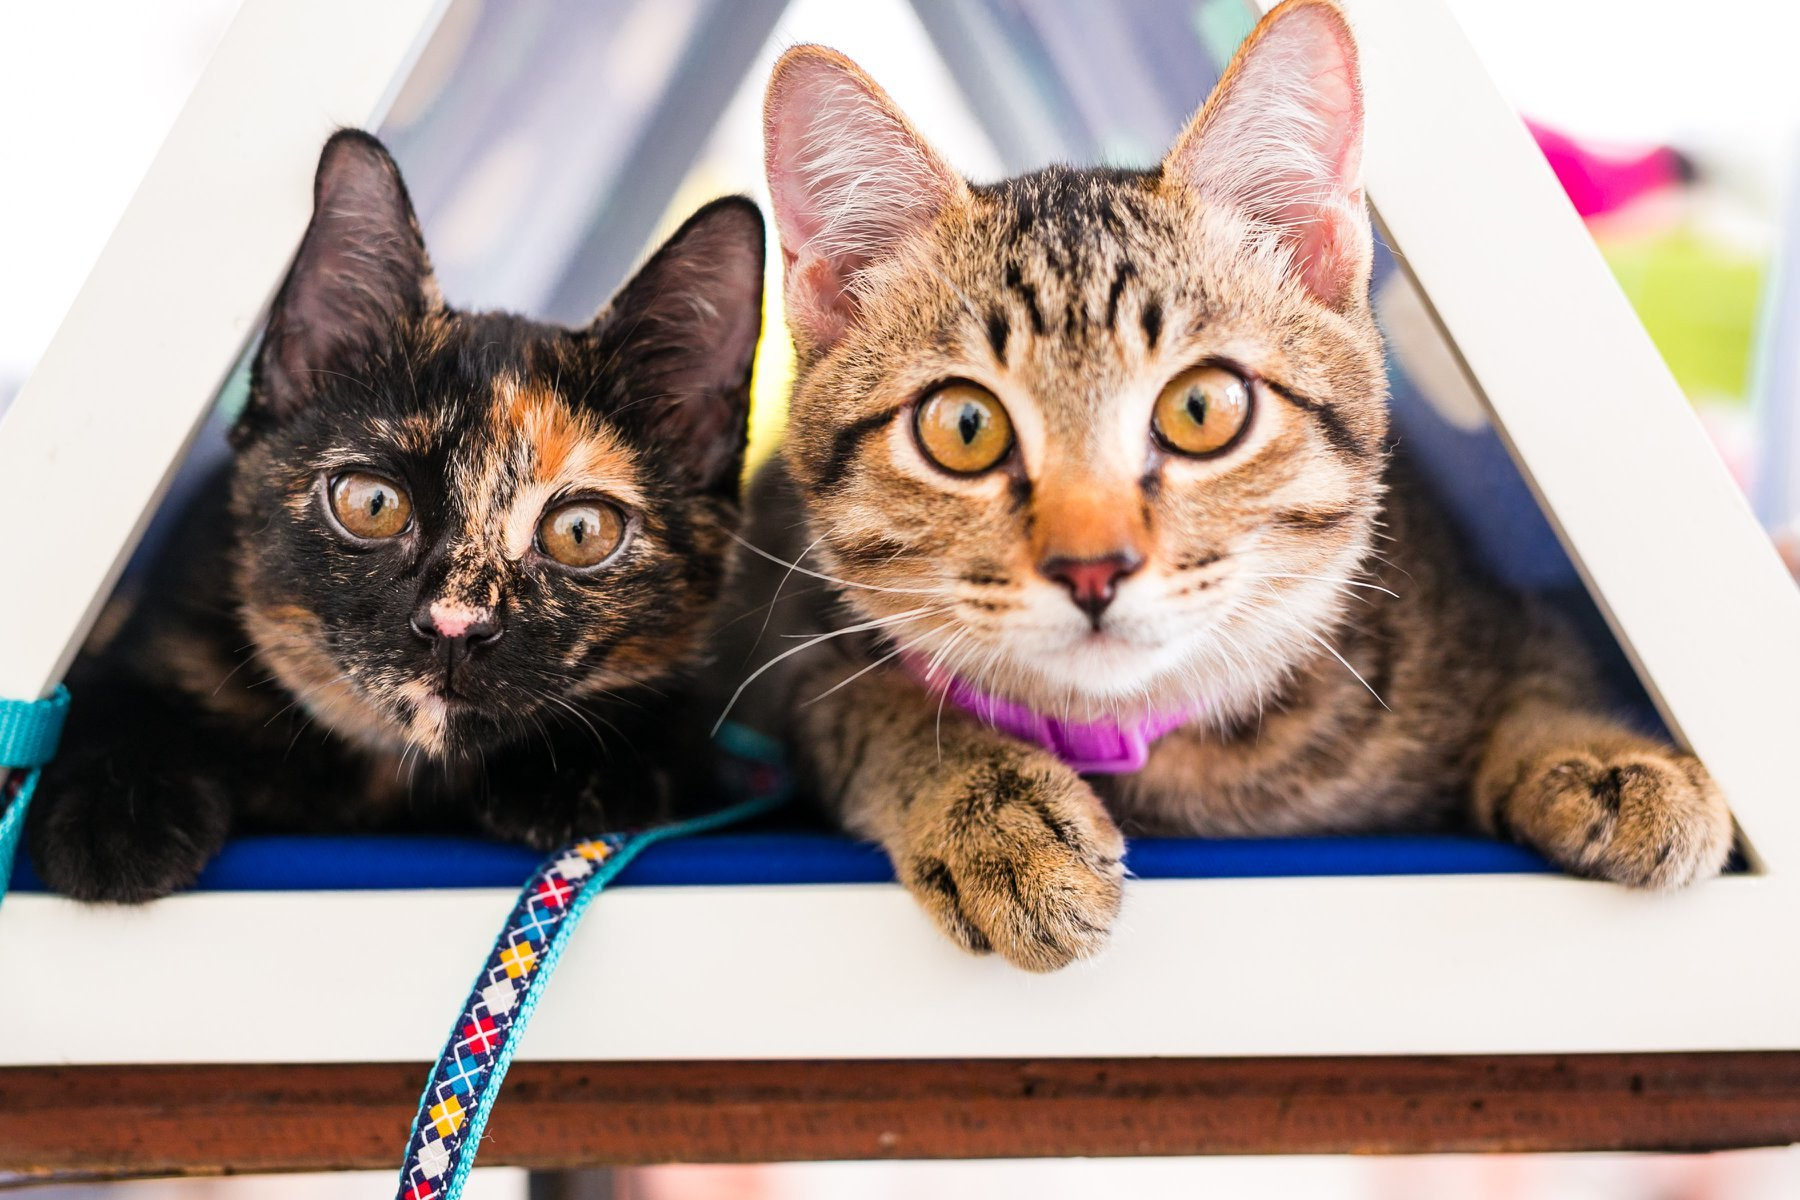 The best animal shelters to adopt a pet in Singapore